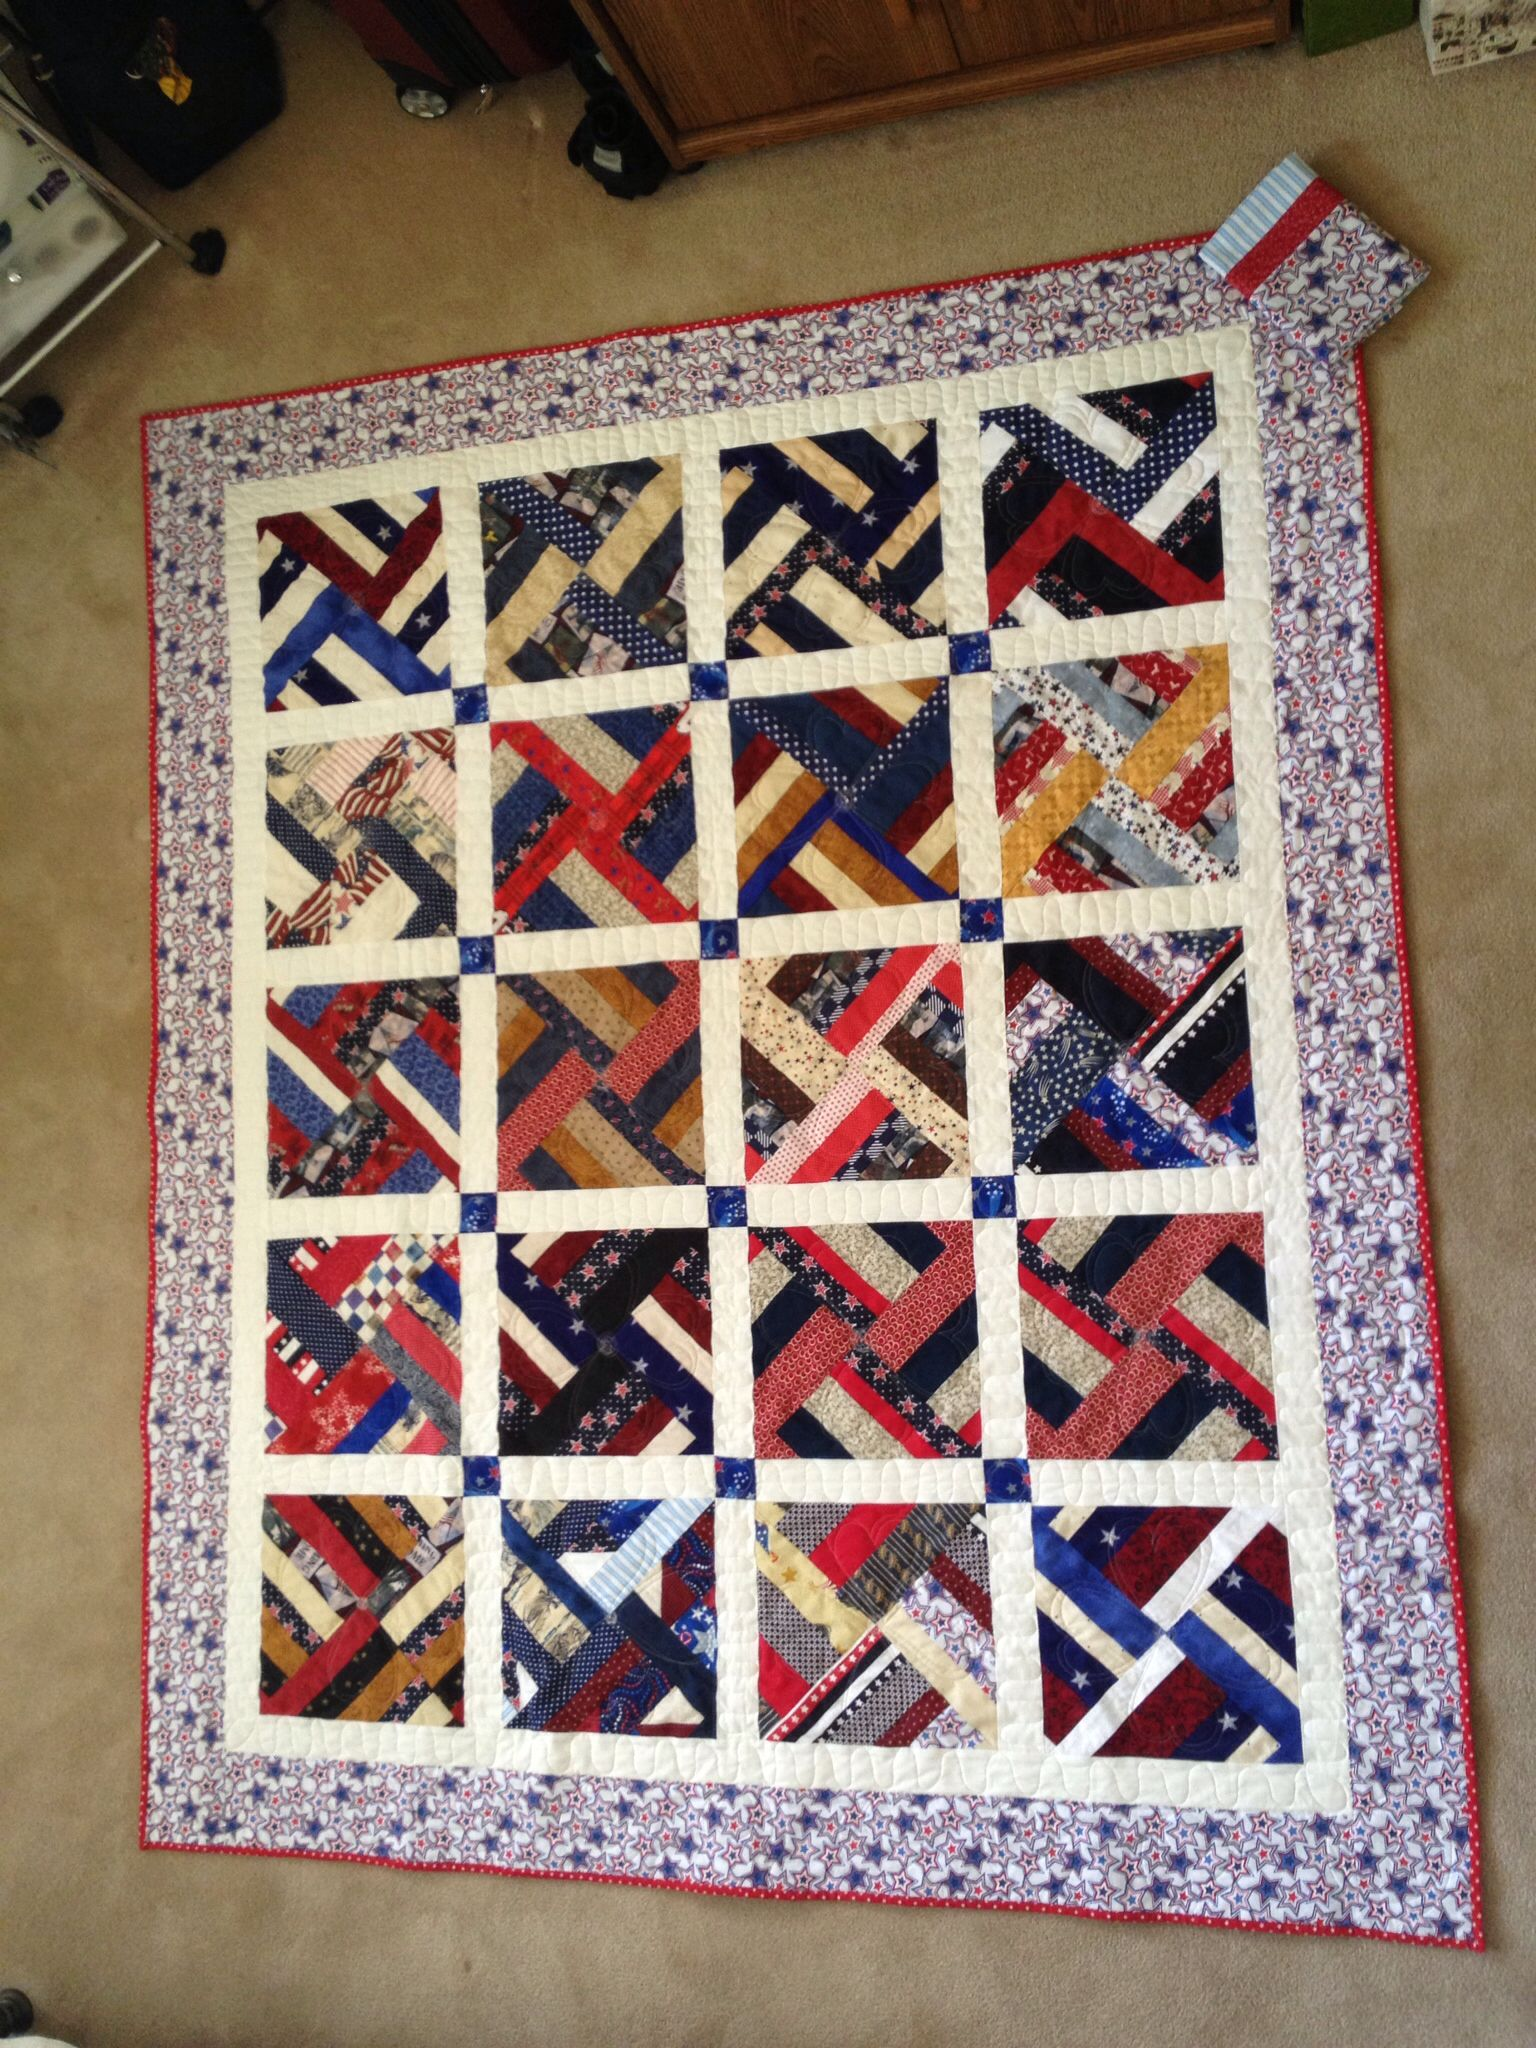 QOV pieced by members of QGbtS quilted by Susan Freudenthal may